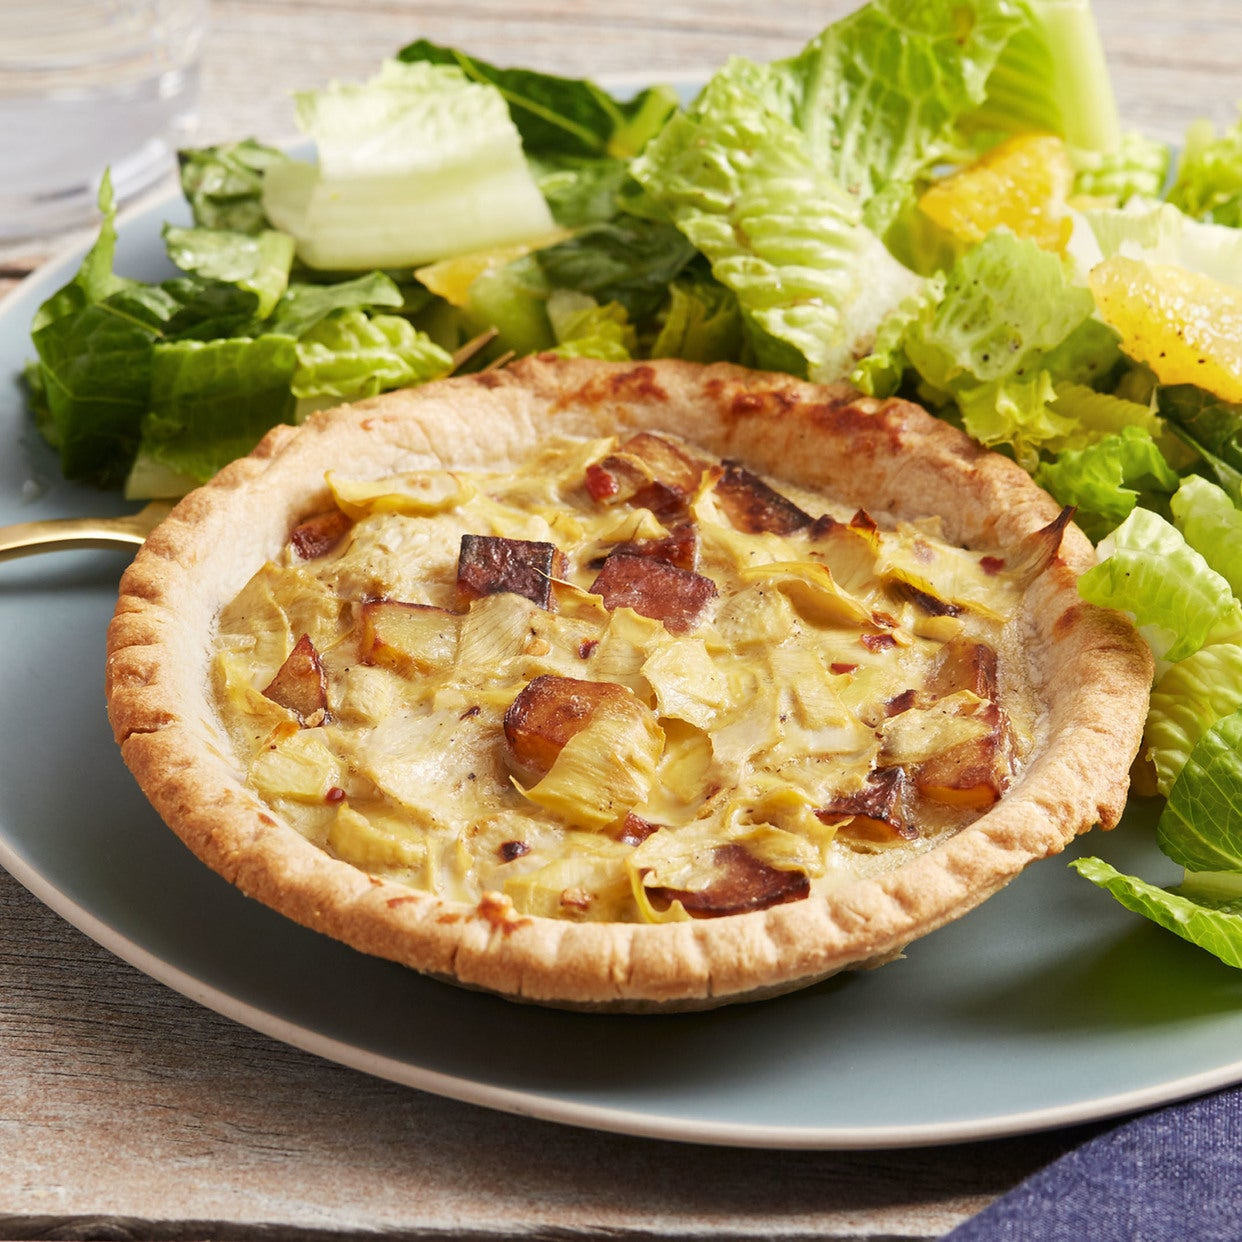 Potato & Artichoke Quiches with Romaine & Orange Salad